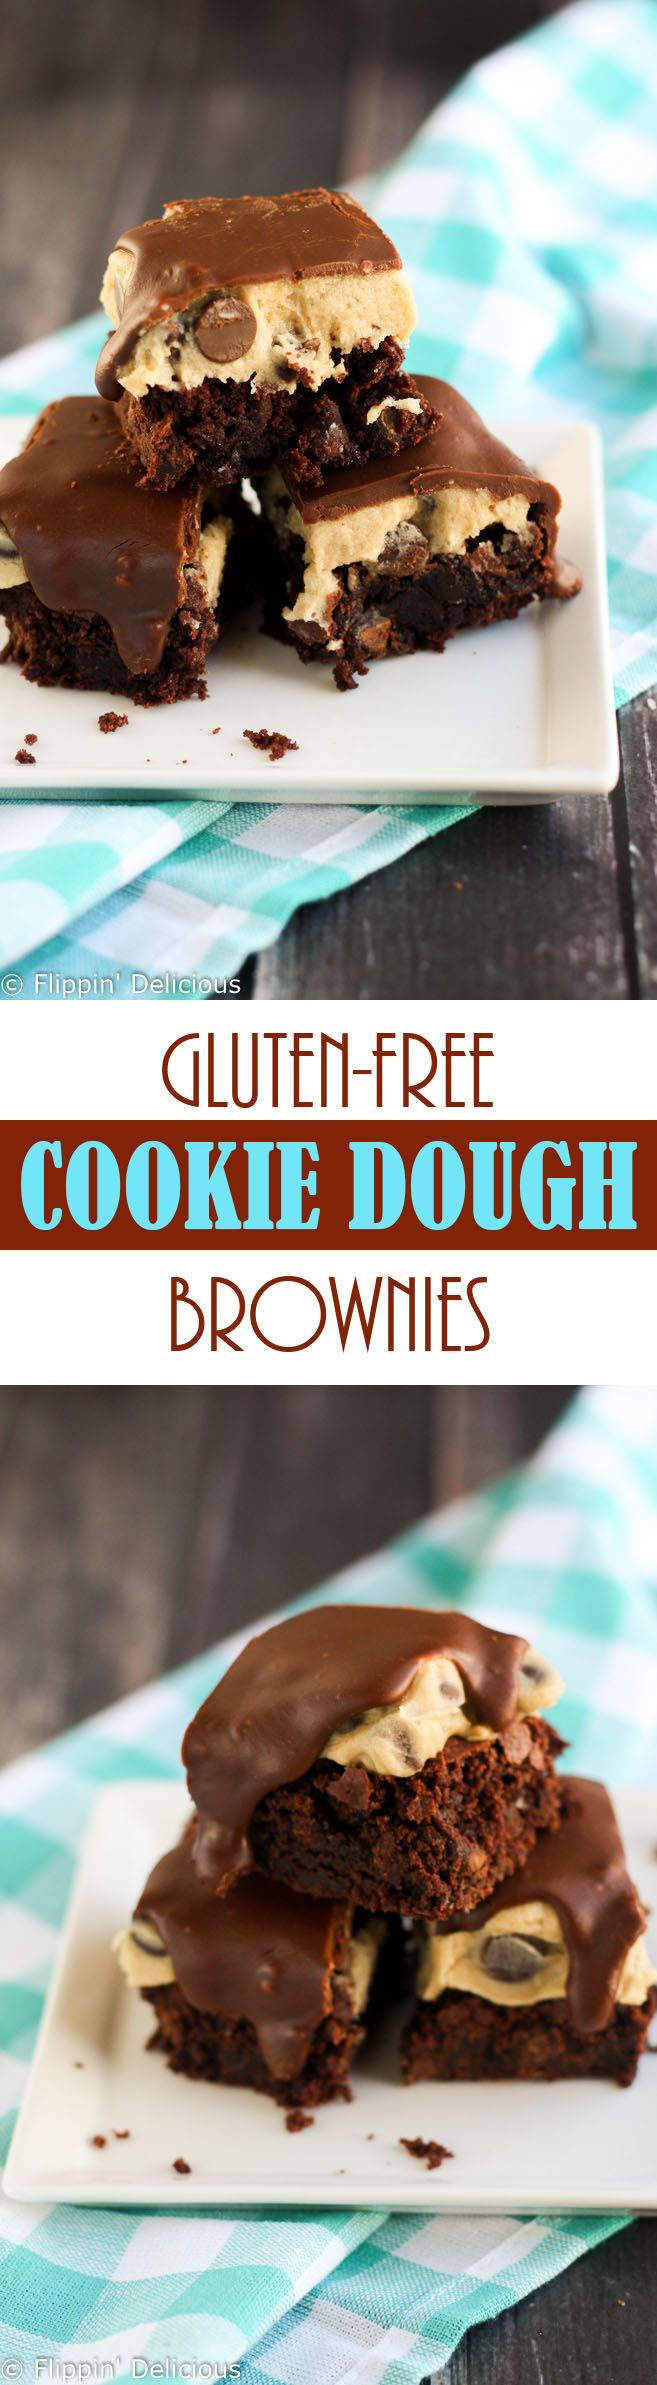 Gluten free cookie and brownie recipes